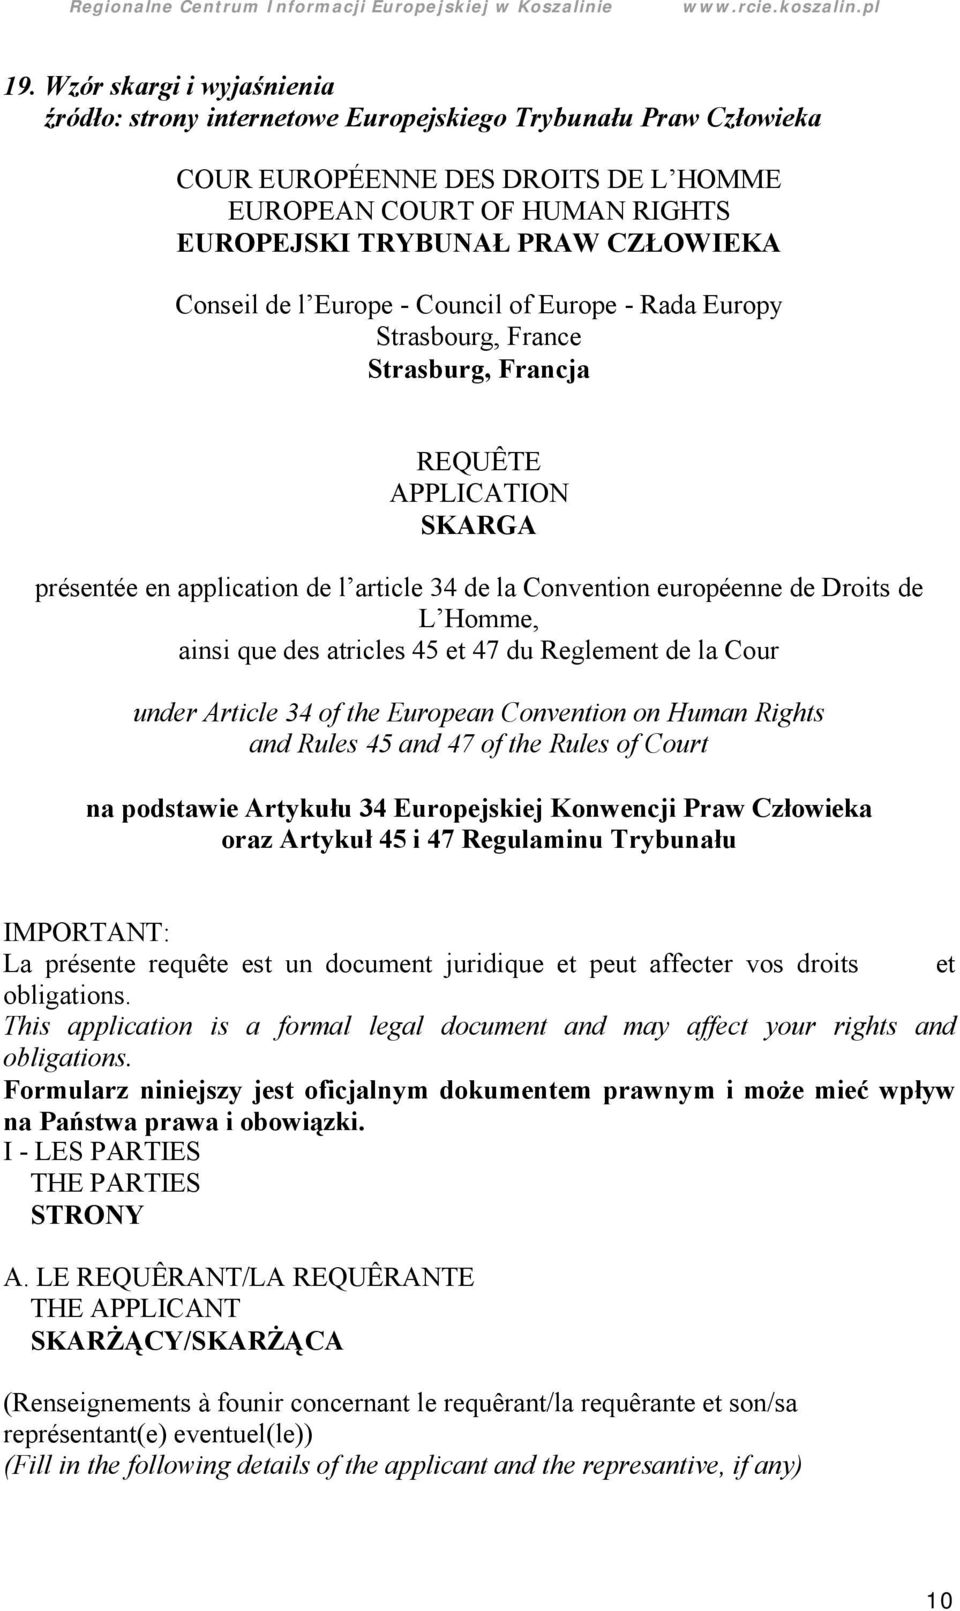 Droits de L Homme, ainsi que des atricles 45 et 47 du Reglement de la Cour under Article 34 of the European Convention on Human Rights and Rules 45 and 47 of the Rules of Court na podstawie Artykułu